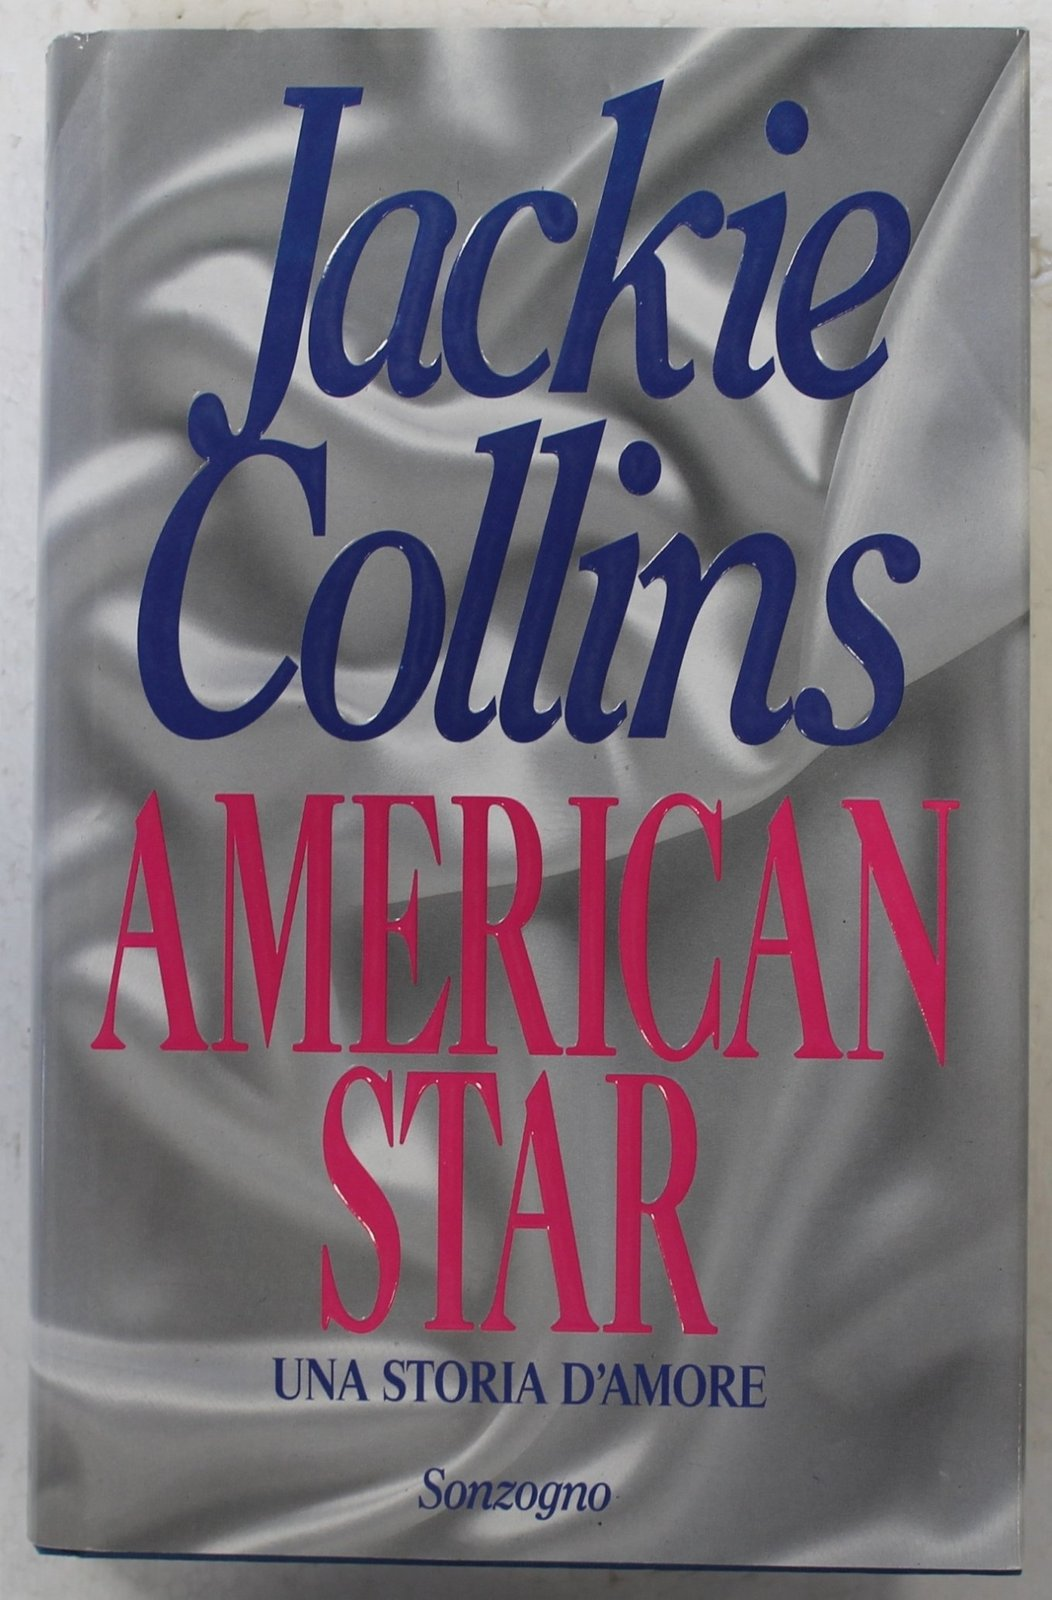 American Star - a Love Story by Jackie Collins